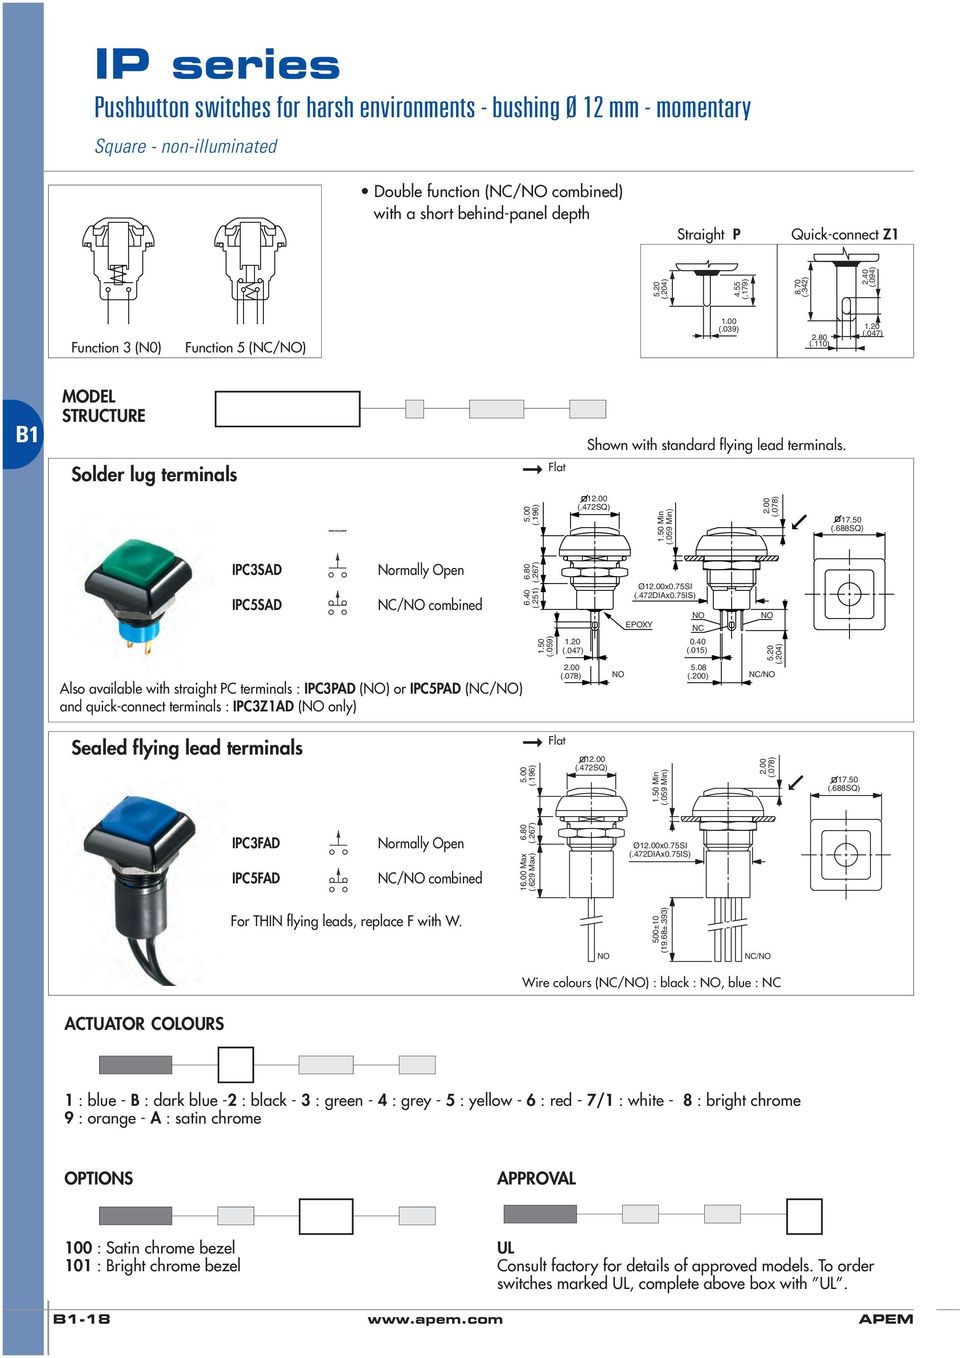 Ip Series Pushbutton Switches For Harsh Environments Bushing 12 Vandal Switch Piezo Capacitive And Circuit Protection 75si Nc Also Available With Straight Pc Terminals Ipc3pad Or Ipc5pad